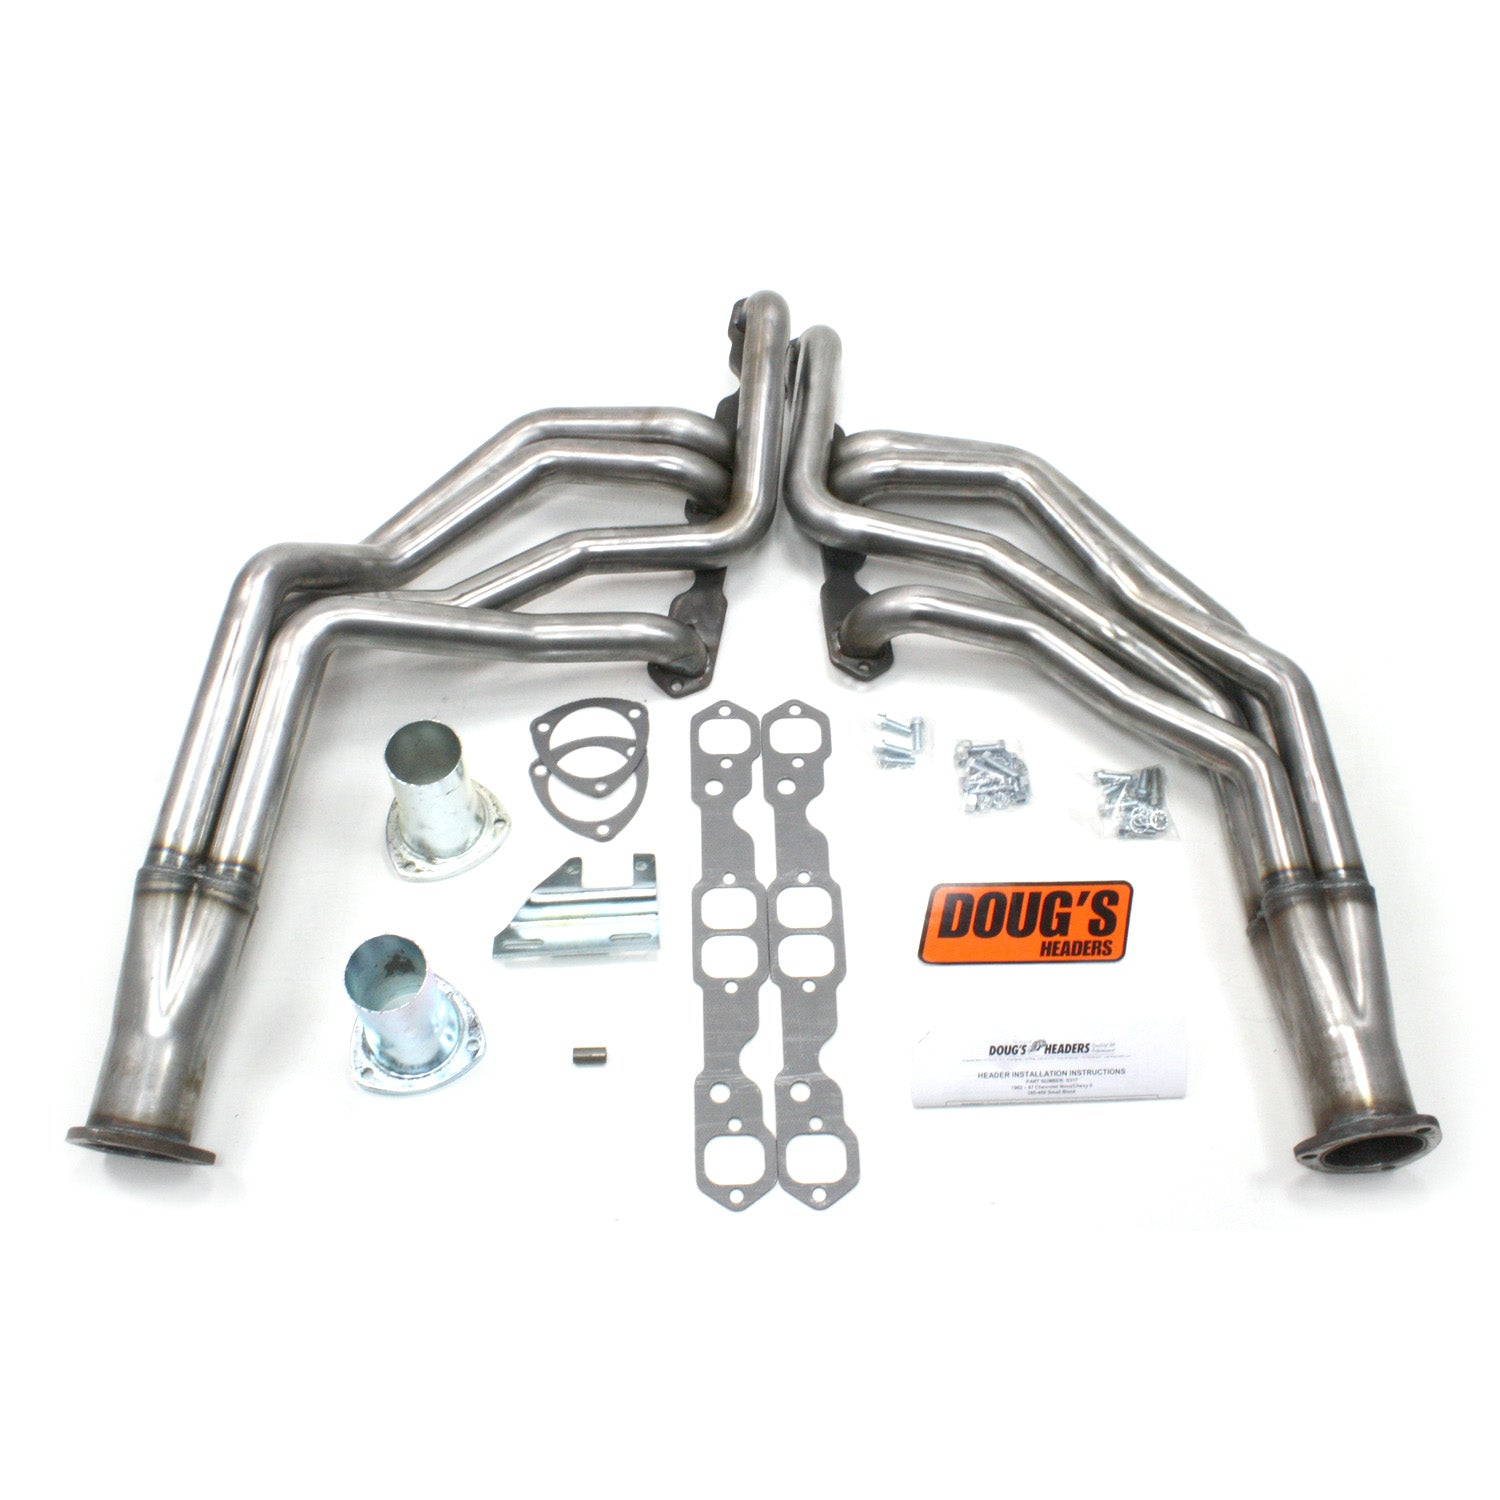 "Doug's Headers D317-R 1 3/4"" 4-Tube Full Length Header Chevy II Small Block Chevrolet 62-67 Raw Steel"